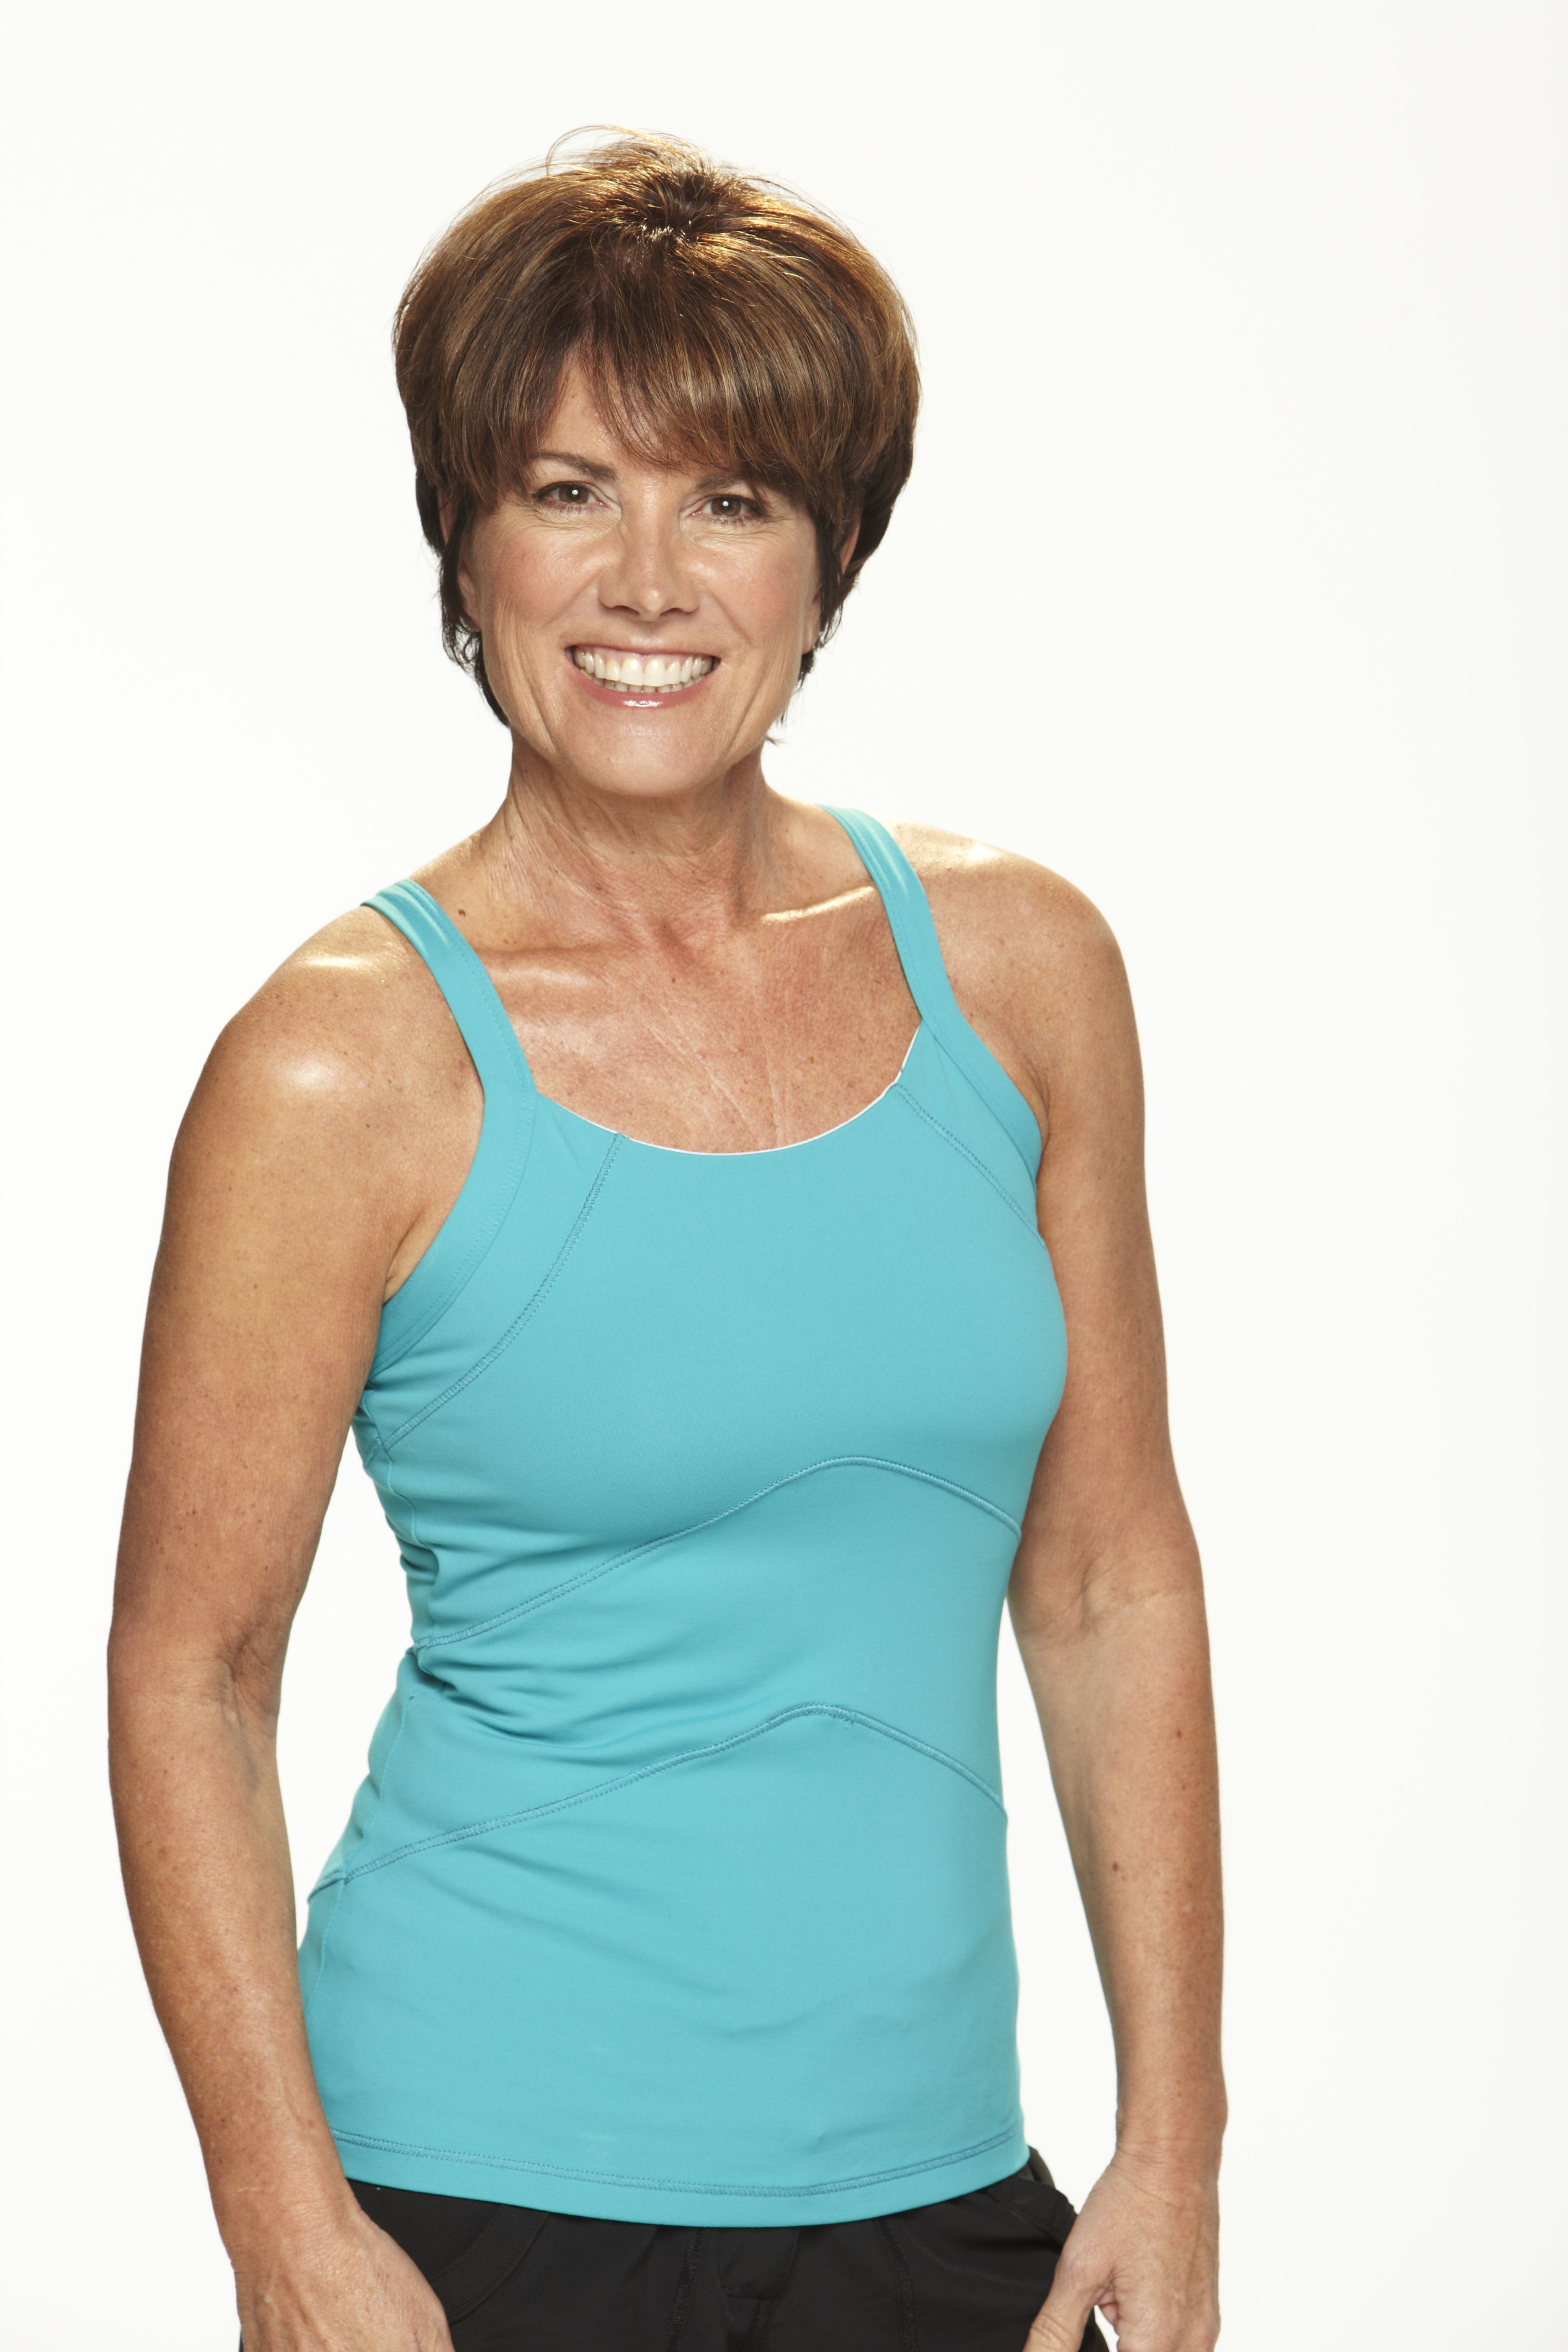 """""""Jazzercise has changed my life! After finally finding a workout I love, I've lost 35 lbs. and gained control of my health! I've danced my way to a size 2."""" — Nancy, 53"""